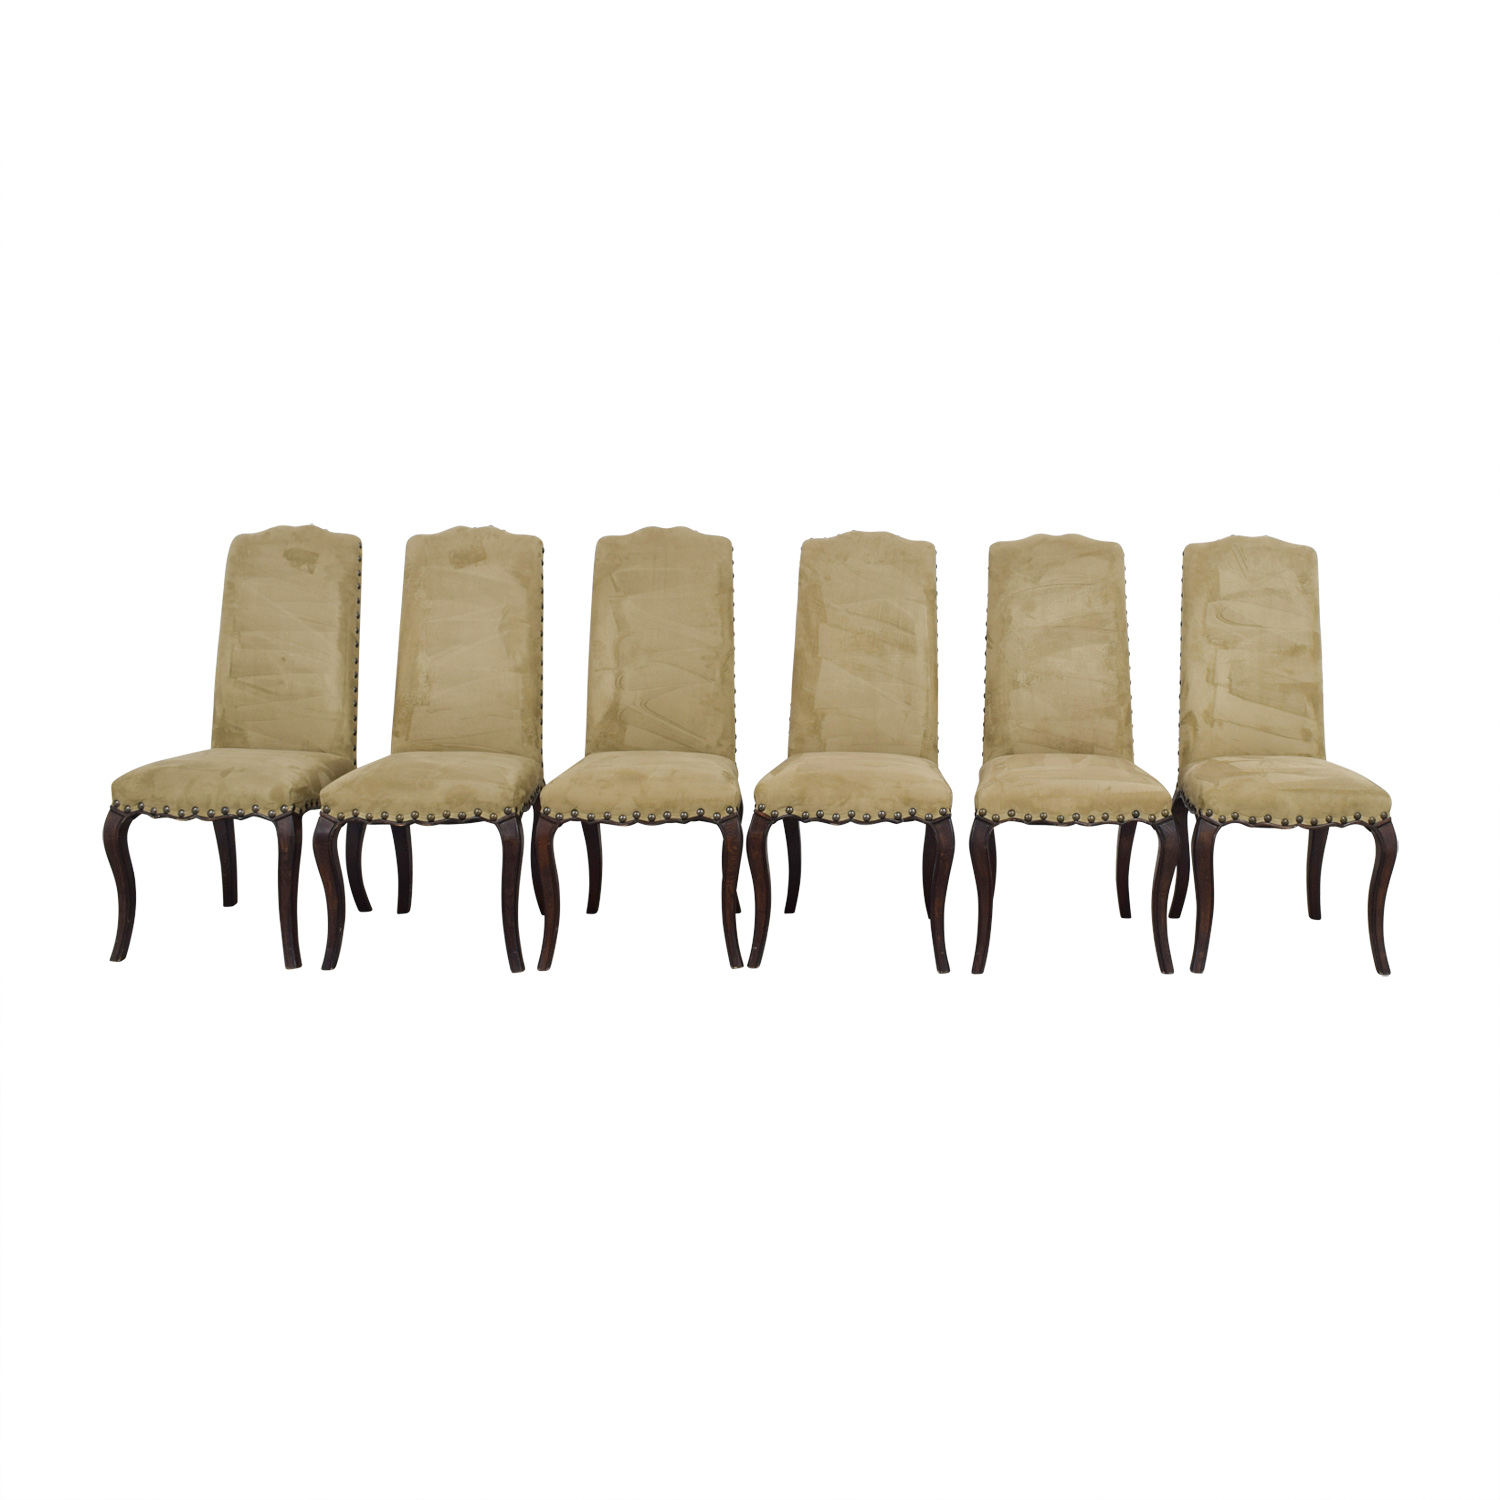 Cool 90 Off Pottery Barn Pottery Barn Calais Microsuede Tan Nailhead Dining Chairs Chairs Caraccident5 Cool Chair Designs And Ideas Caraccident5Info